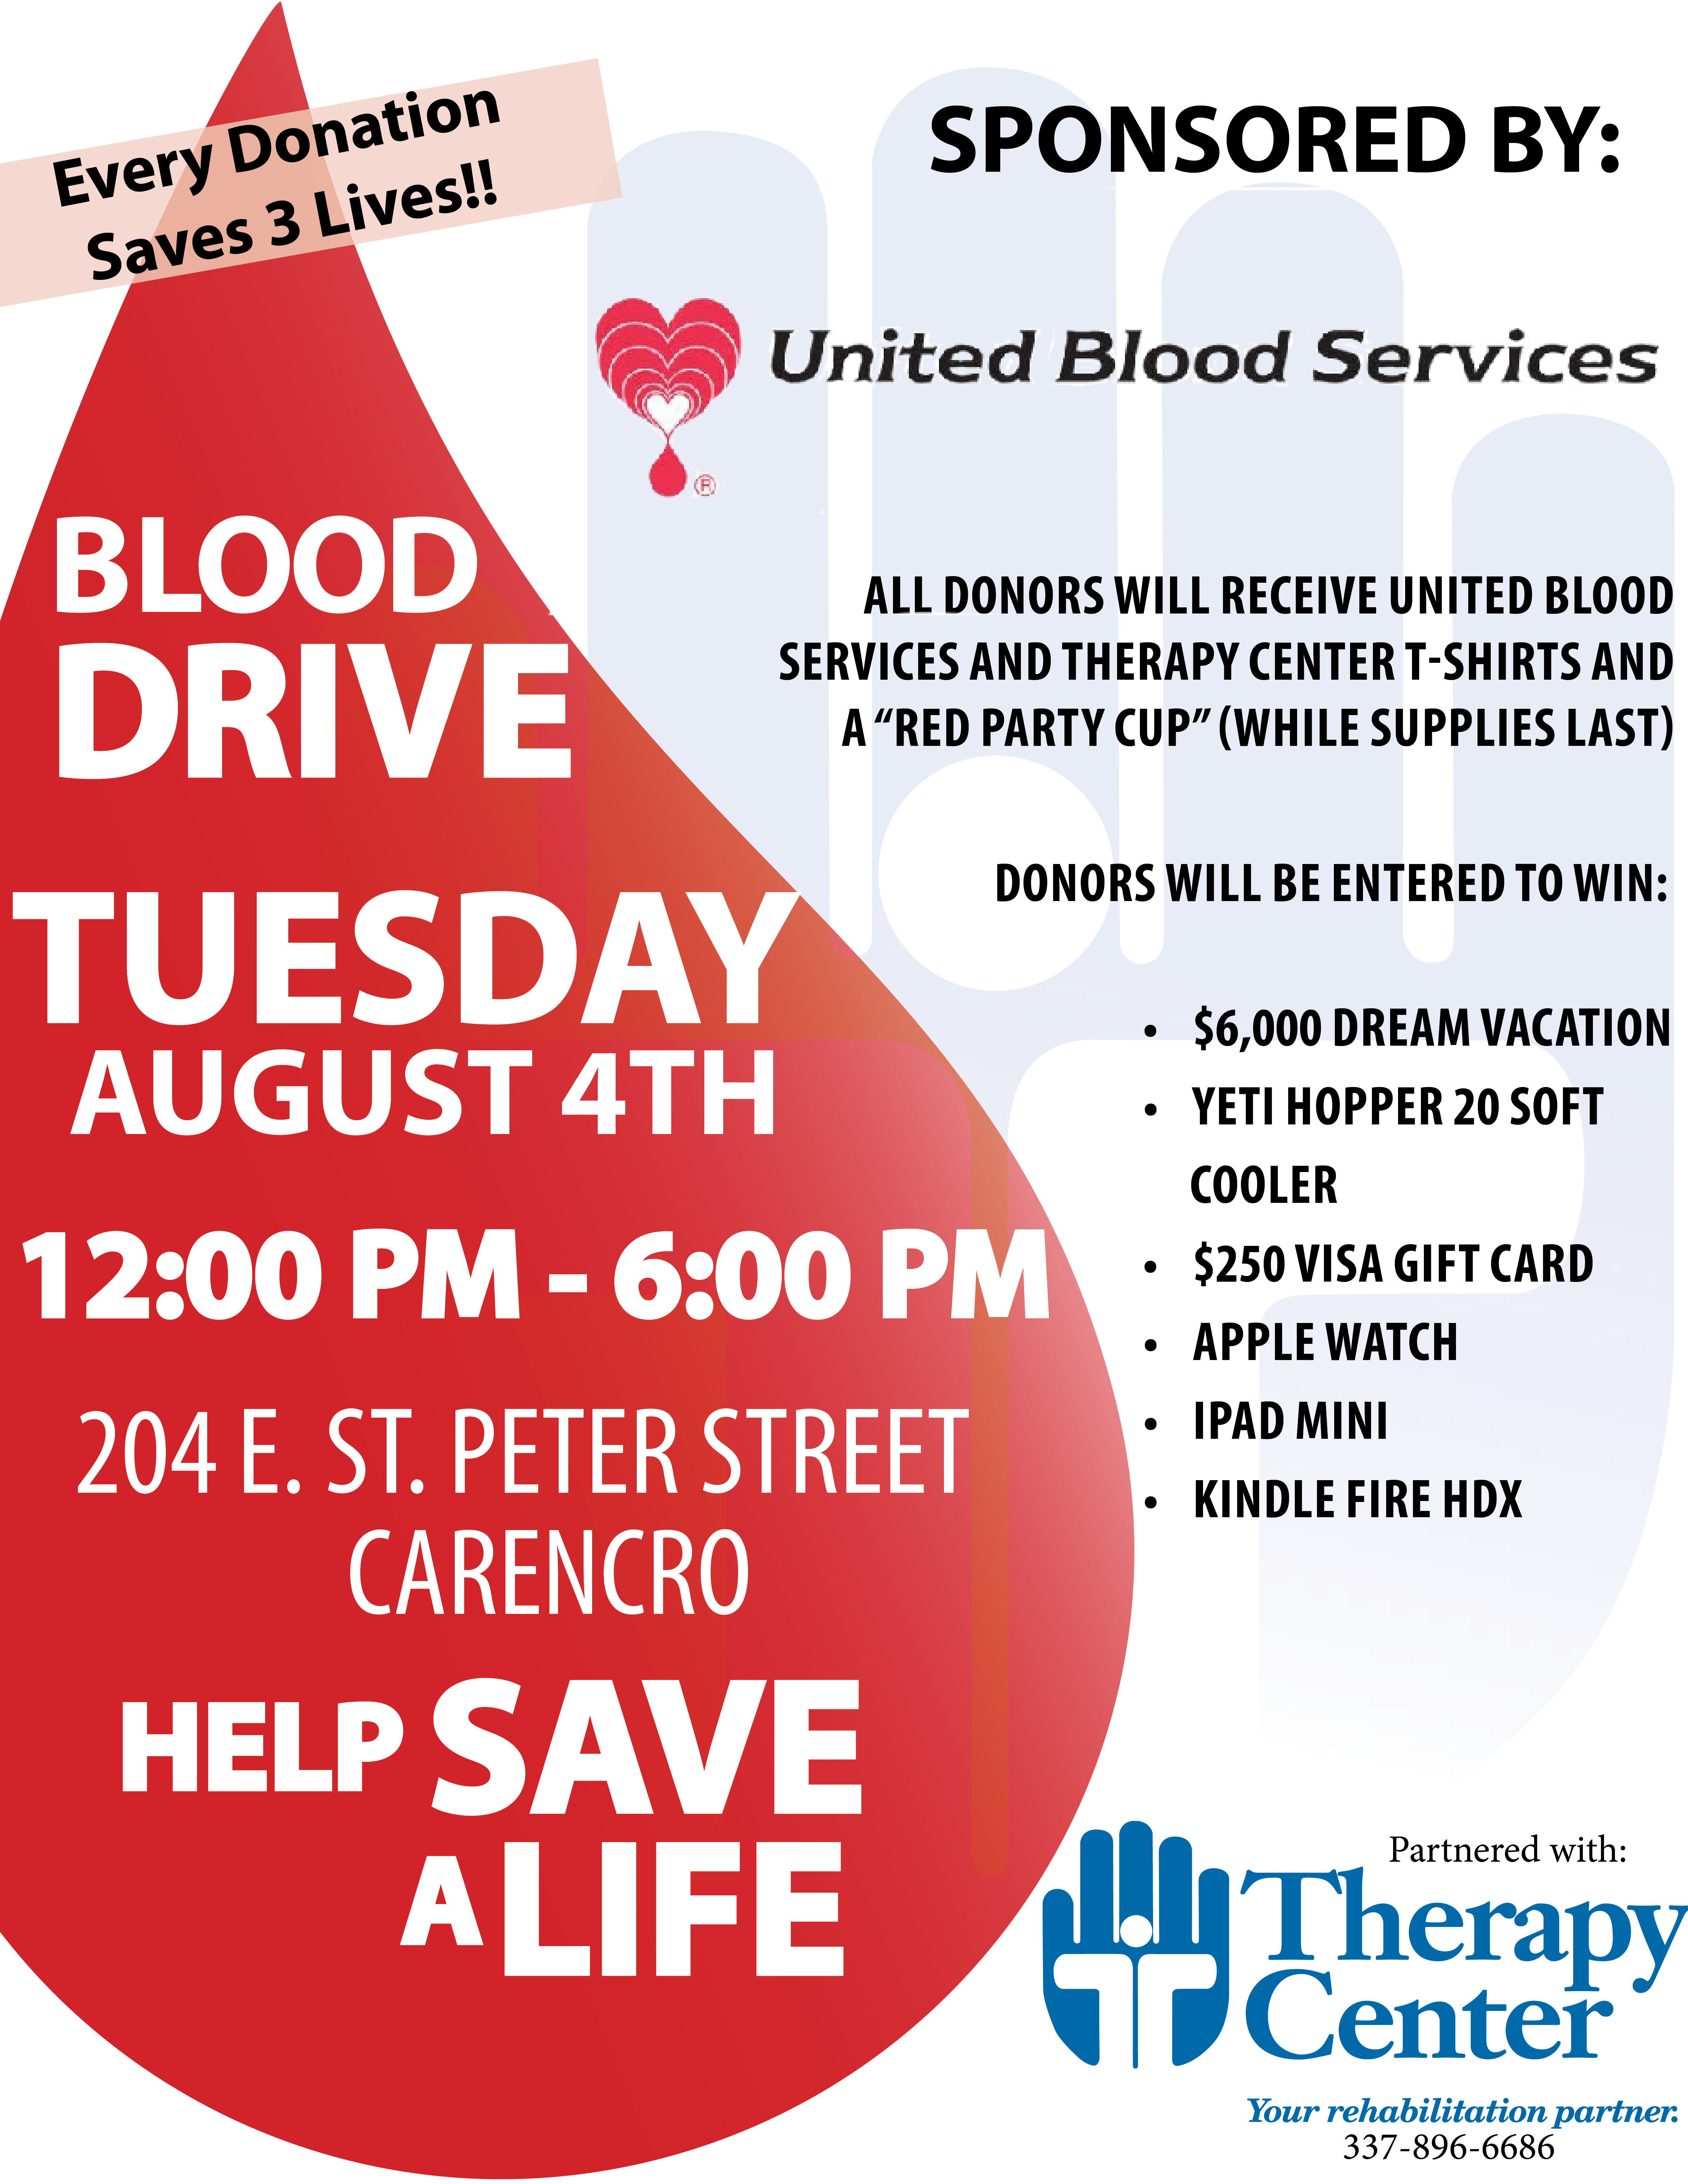 Carencro Blood drive flyer